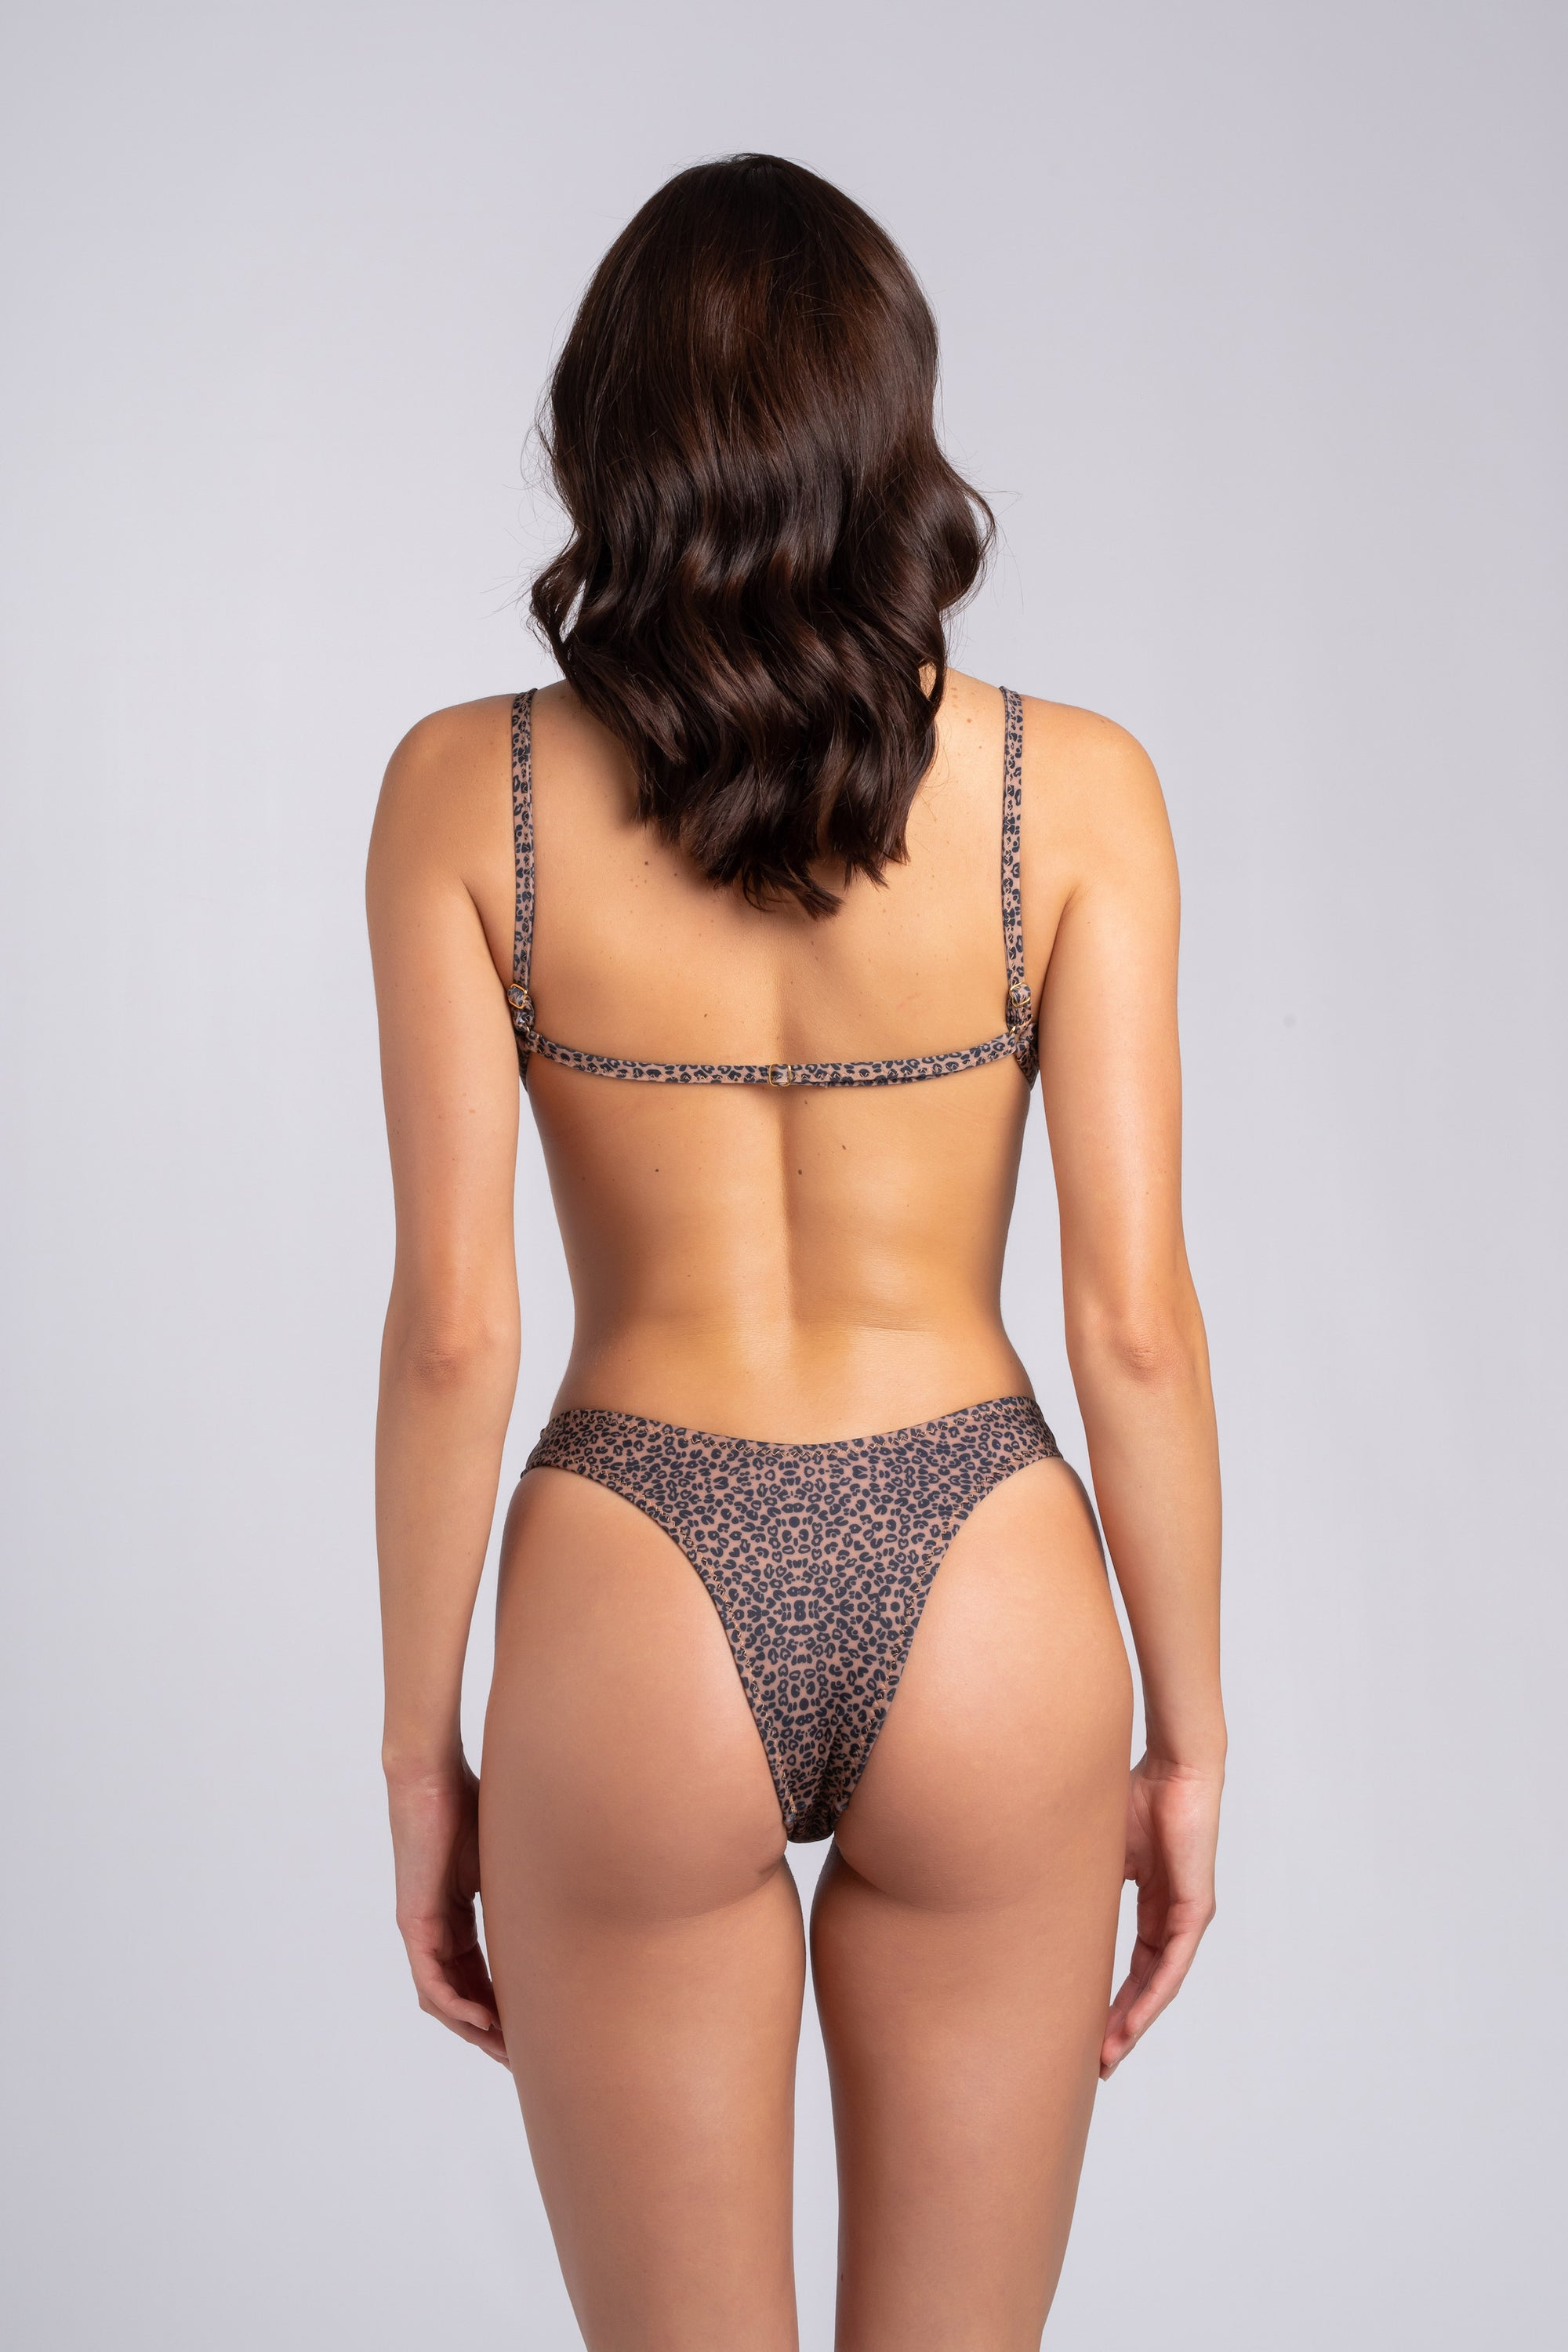 Cheeky Bottom Leo: bikini animalier bottom, perizoma mare animalier